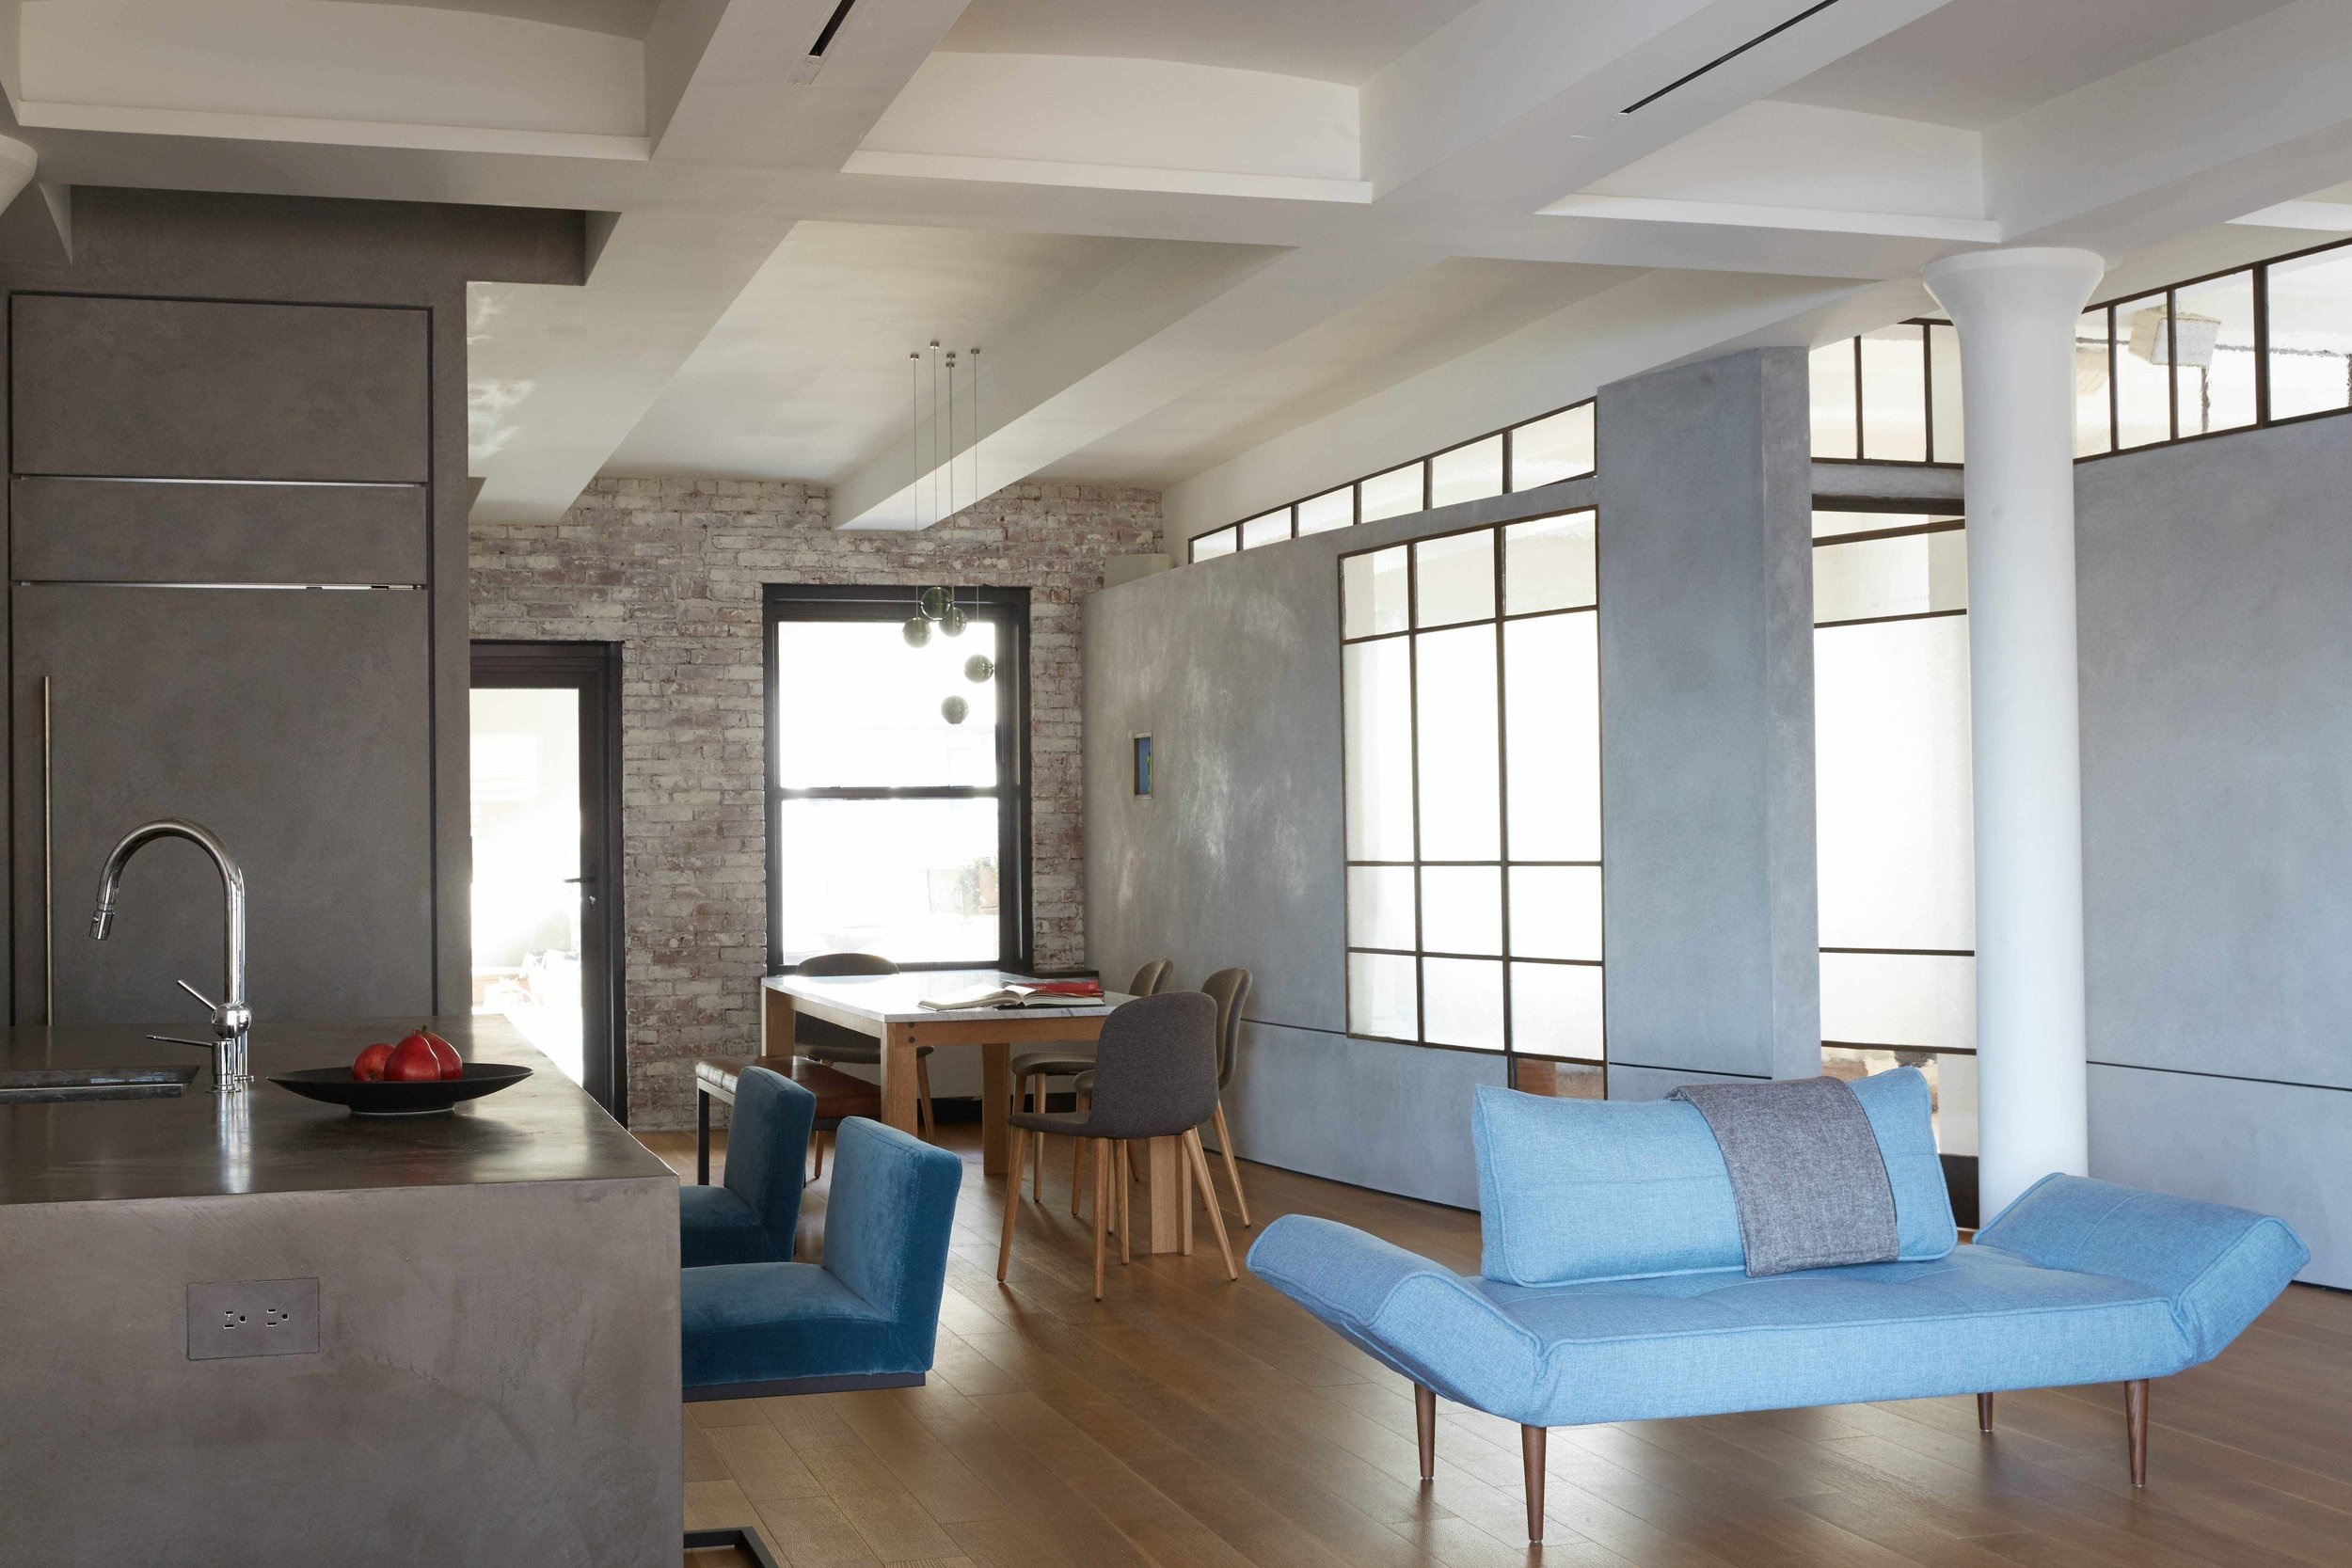 west village looking toward dining and bedrom glass walls.jpg